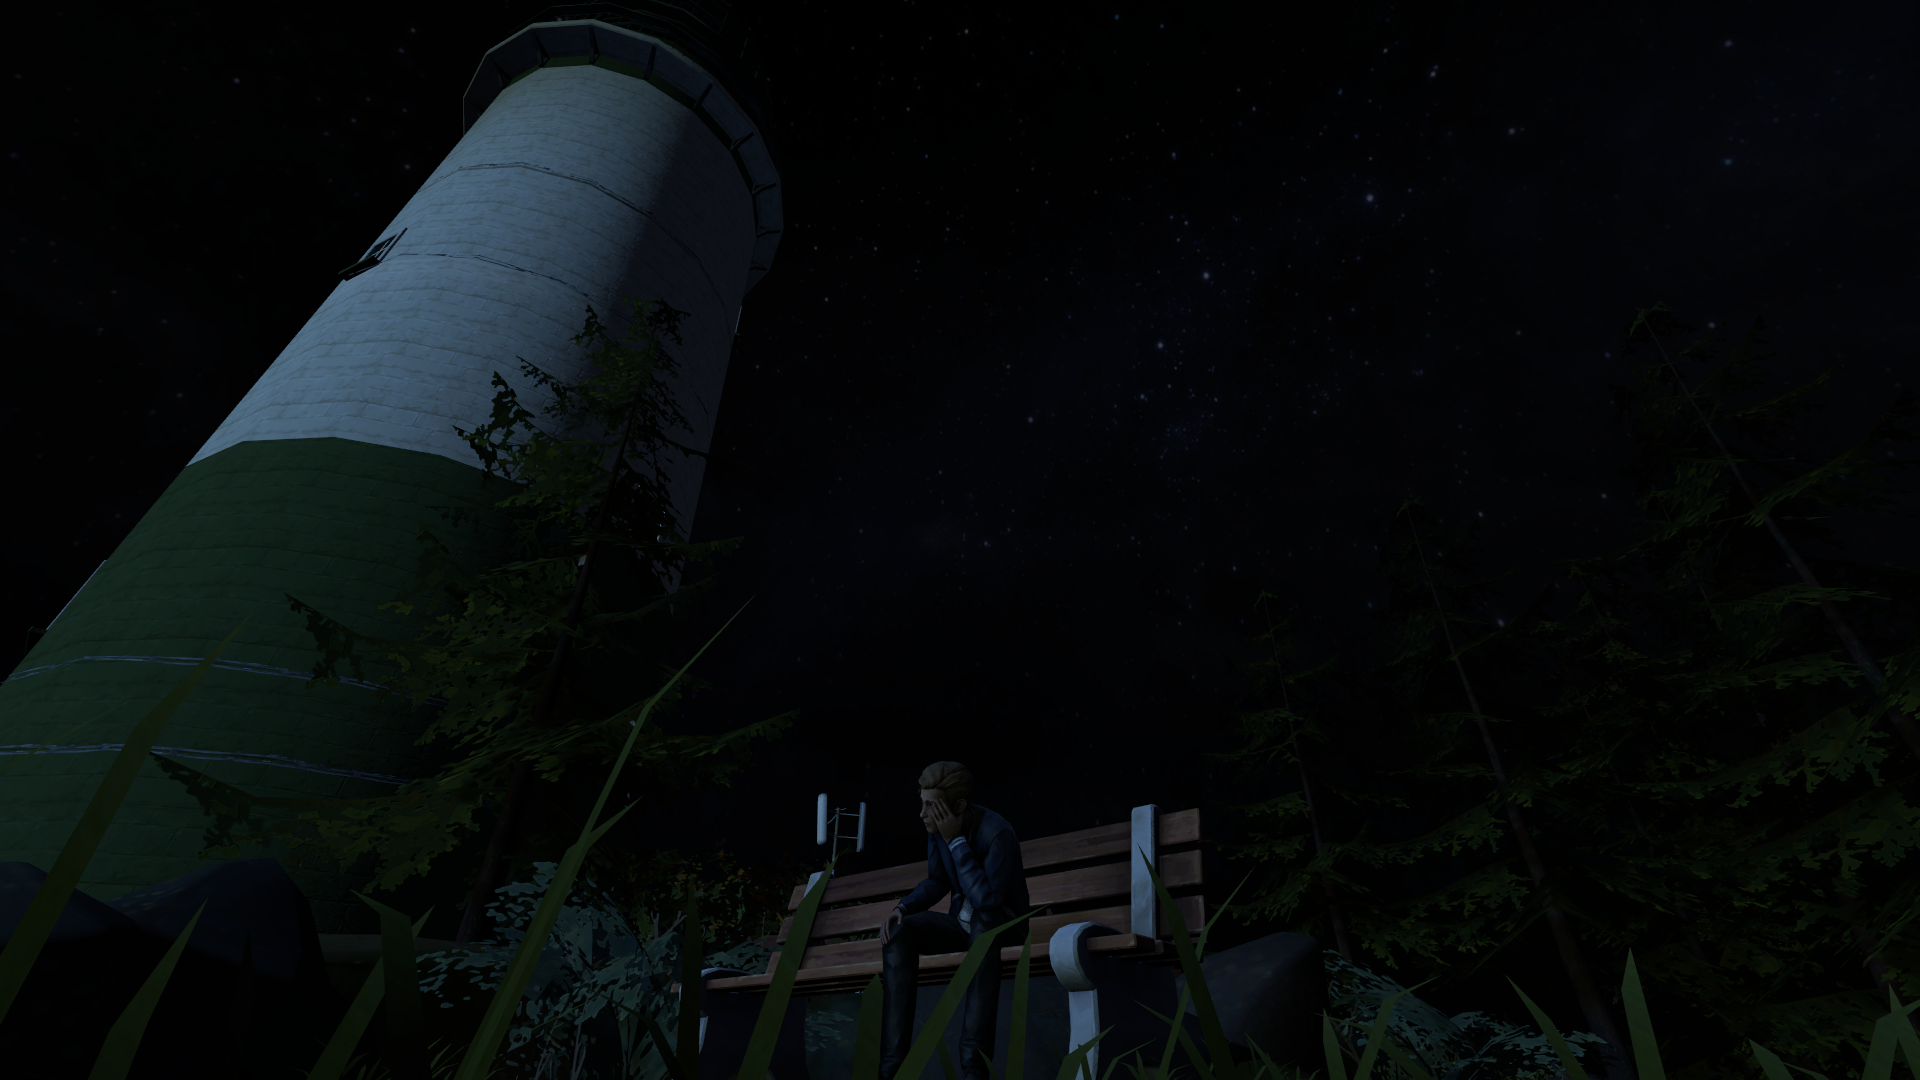 [LiS] Under the Stars by BenGrunder